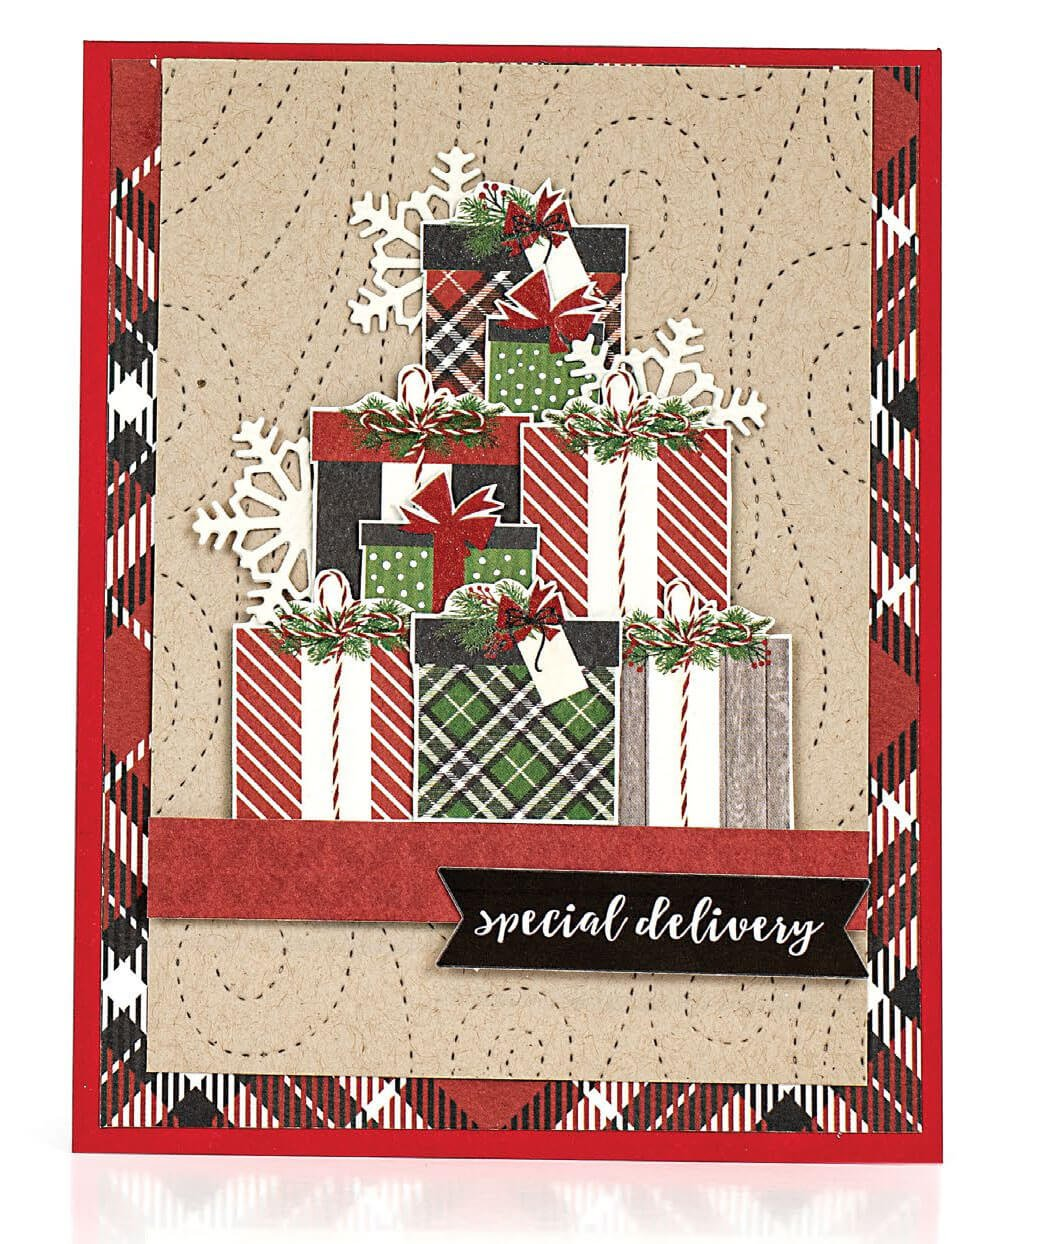 Scrapbook & Cards Today - Winter 2019 - Special Delivery card by Consuelo Morales